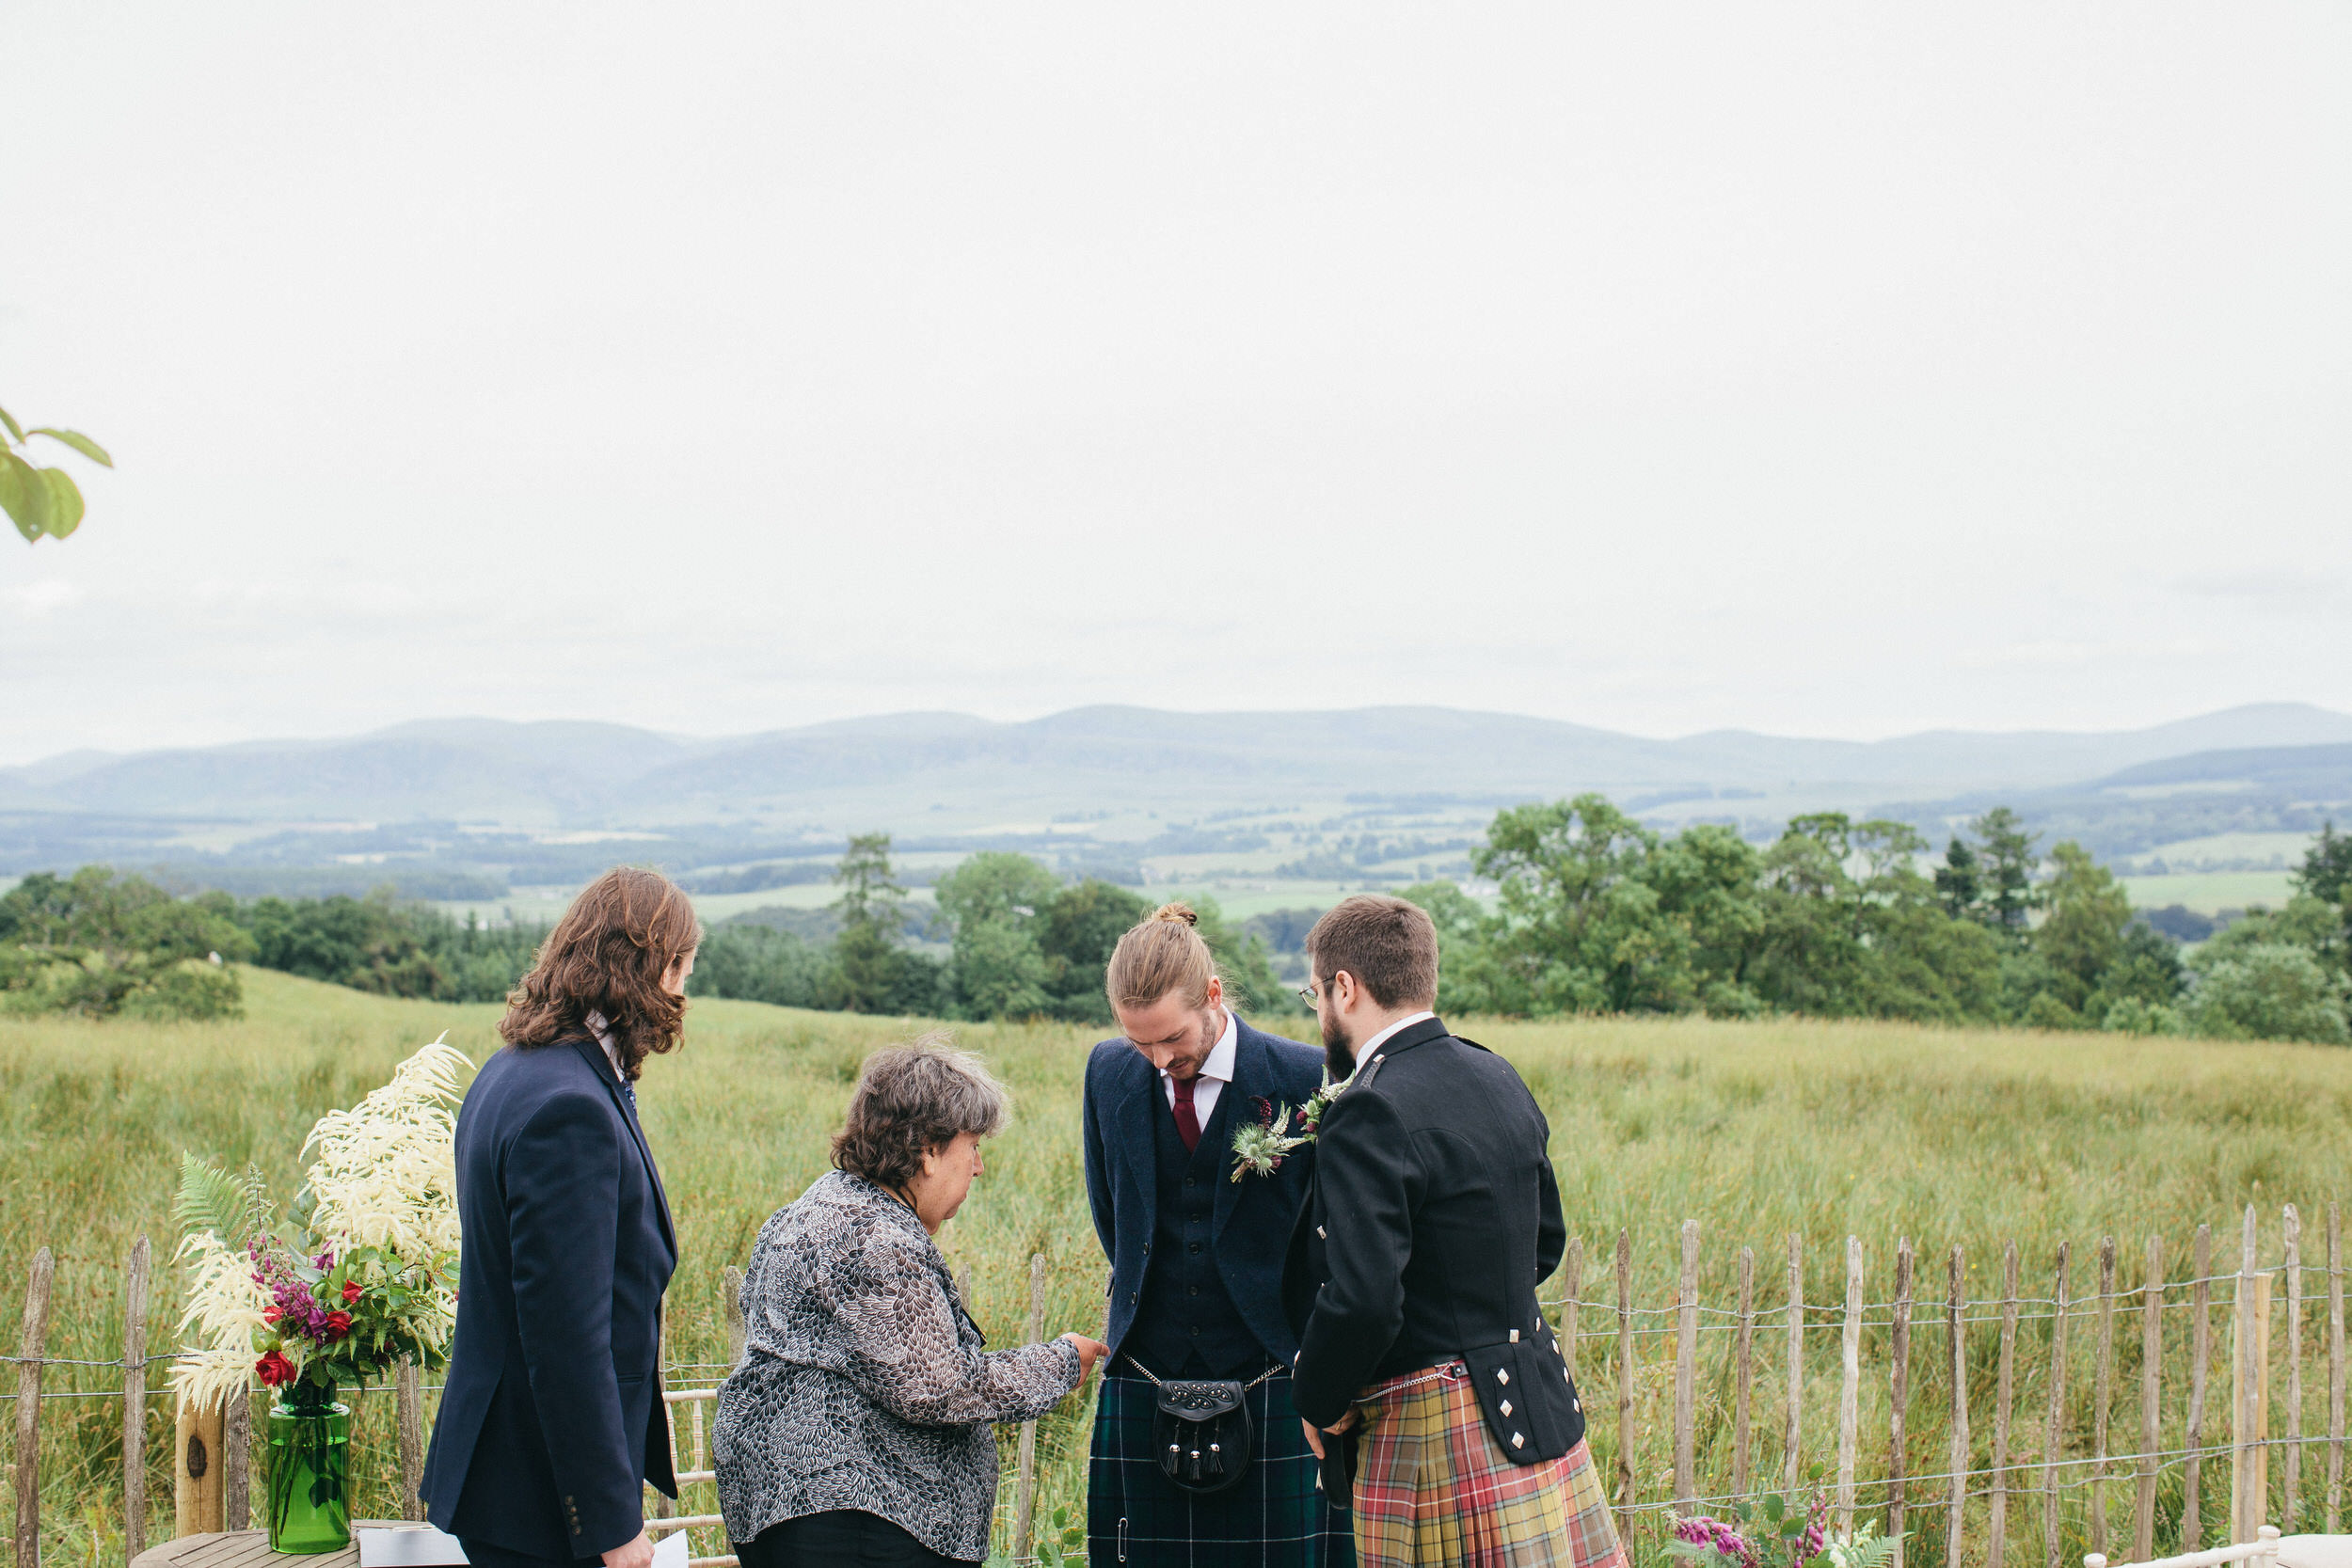 Alternative Quirky Wedding Photographer Scotland Borders Edinburgh 010.jpg